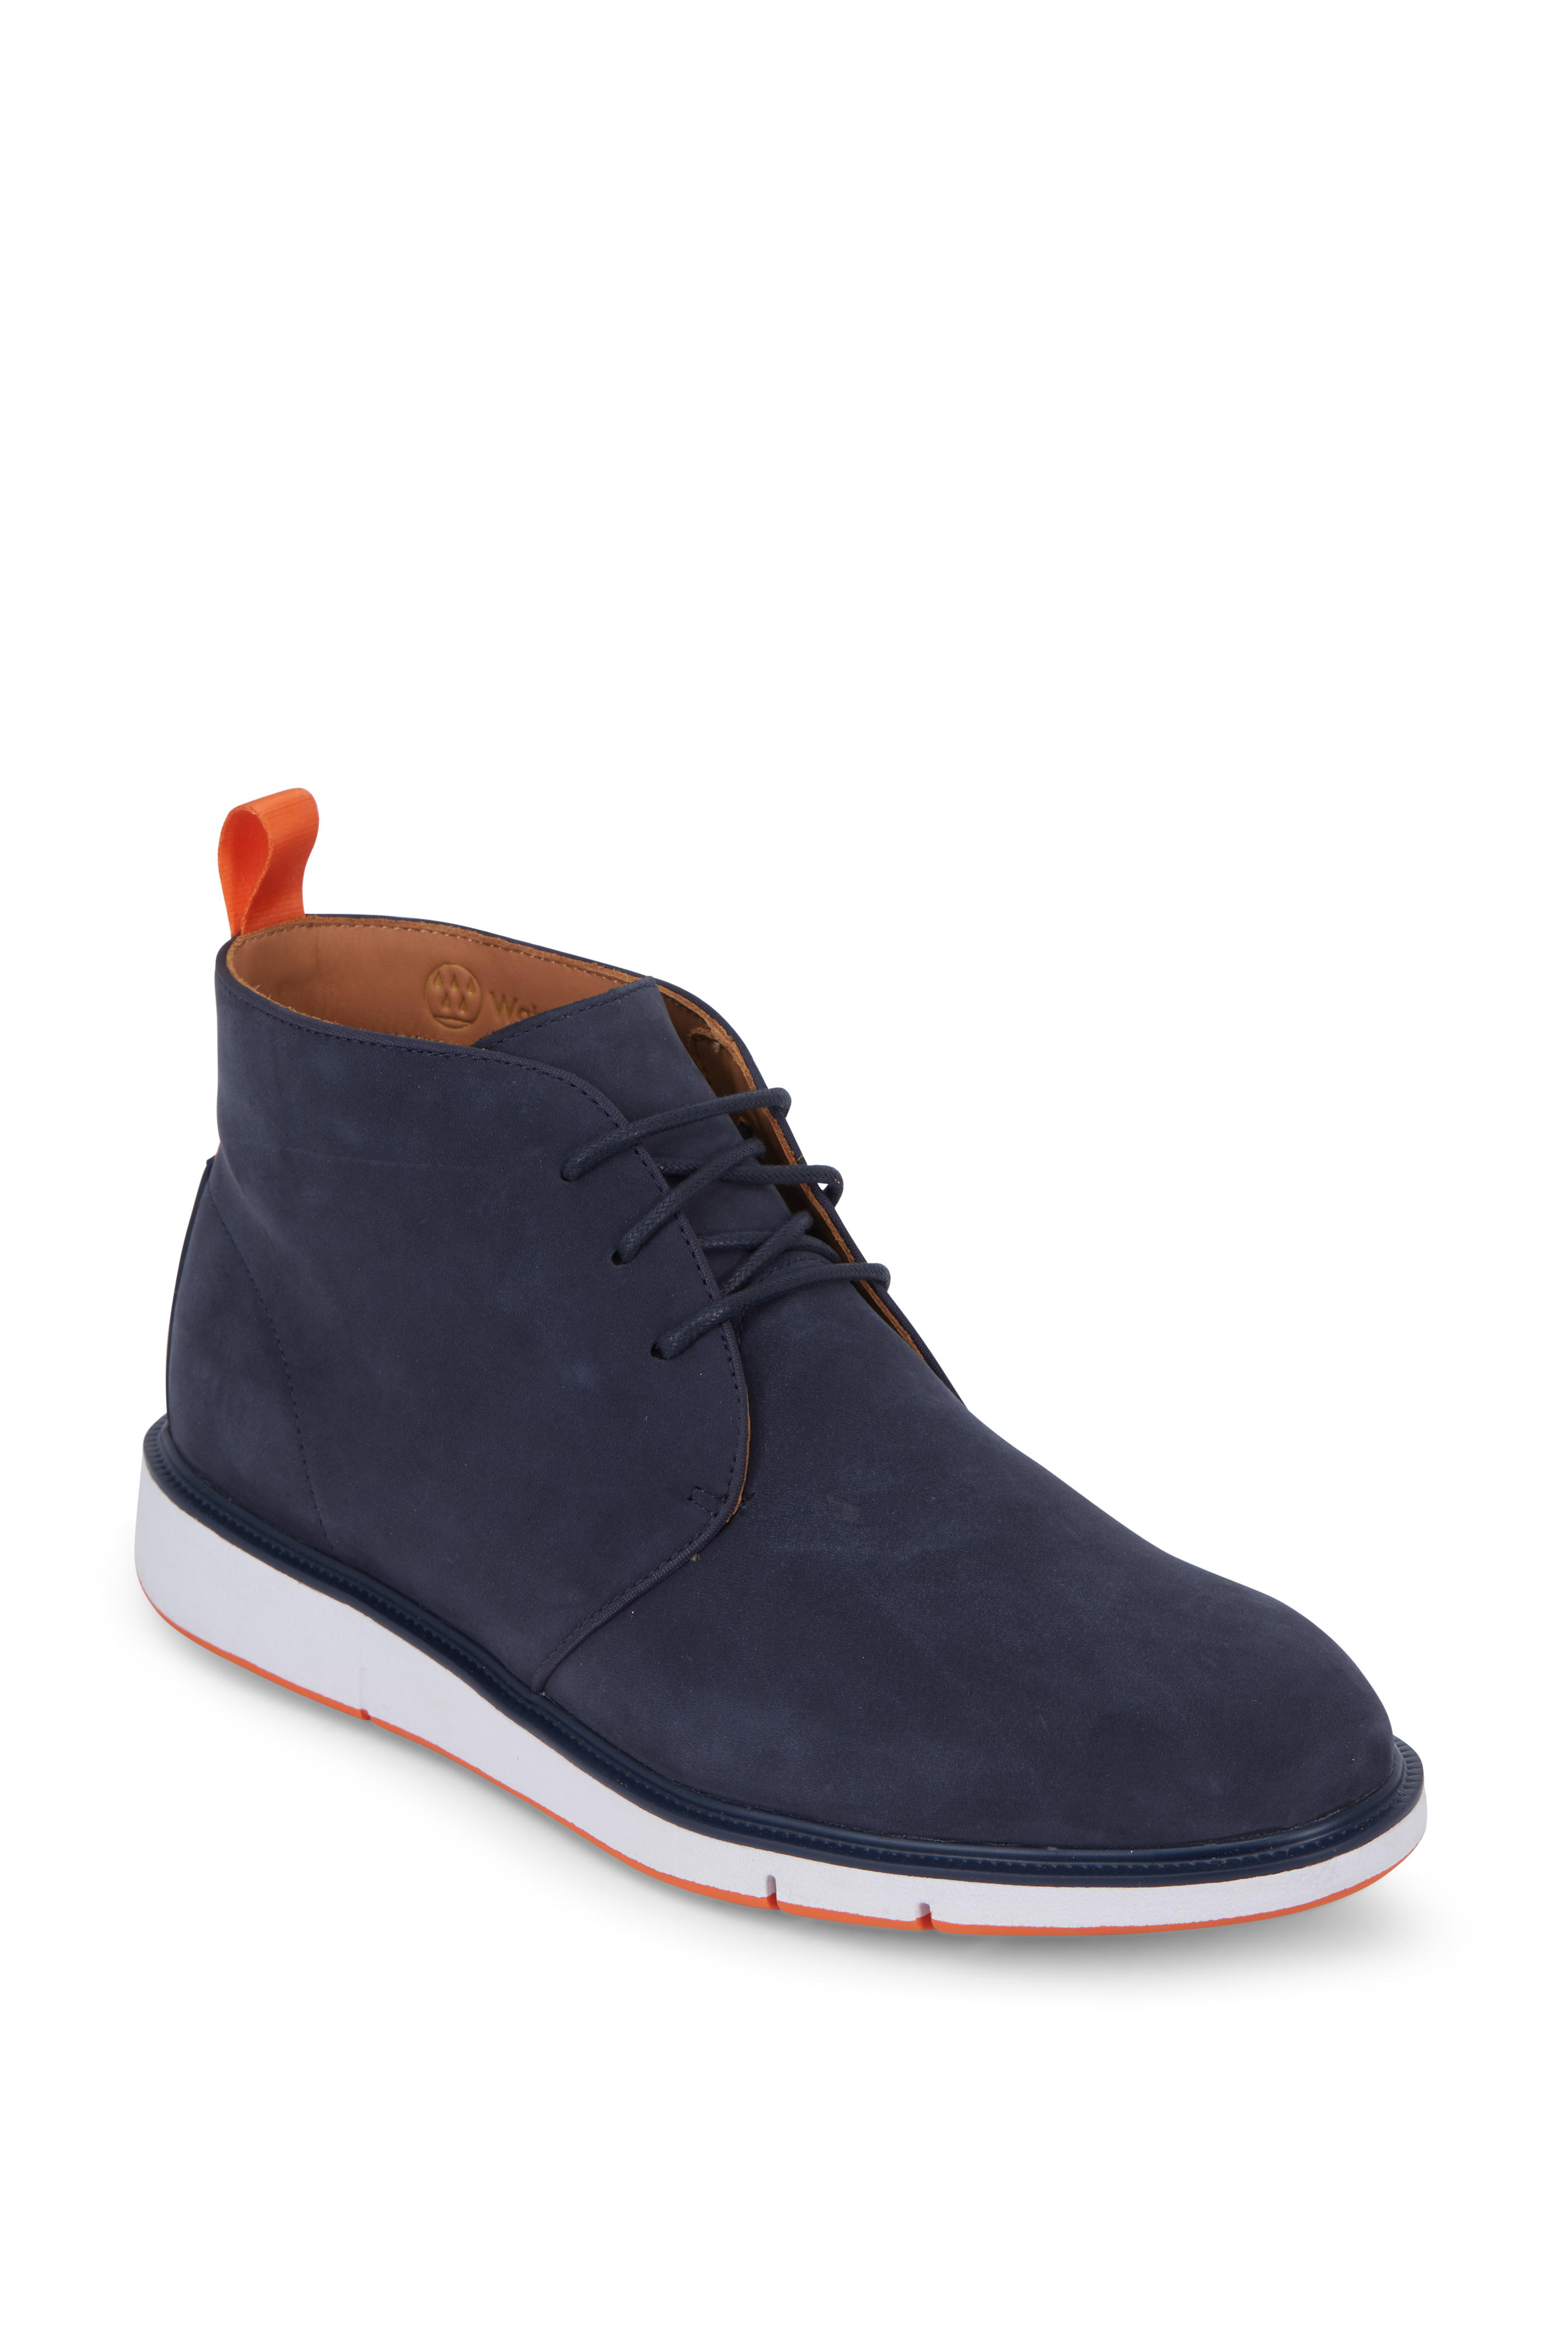 11fe94bca52 Swims - Motion Navy Blue & Orange Suede Chukka Boot | Mitchell Stores